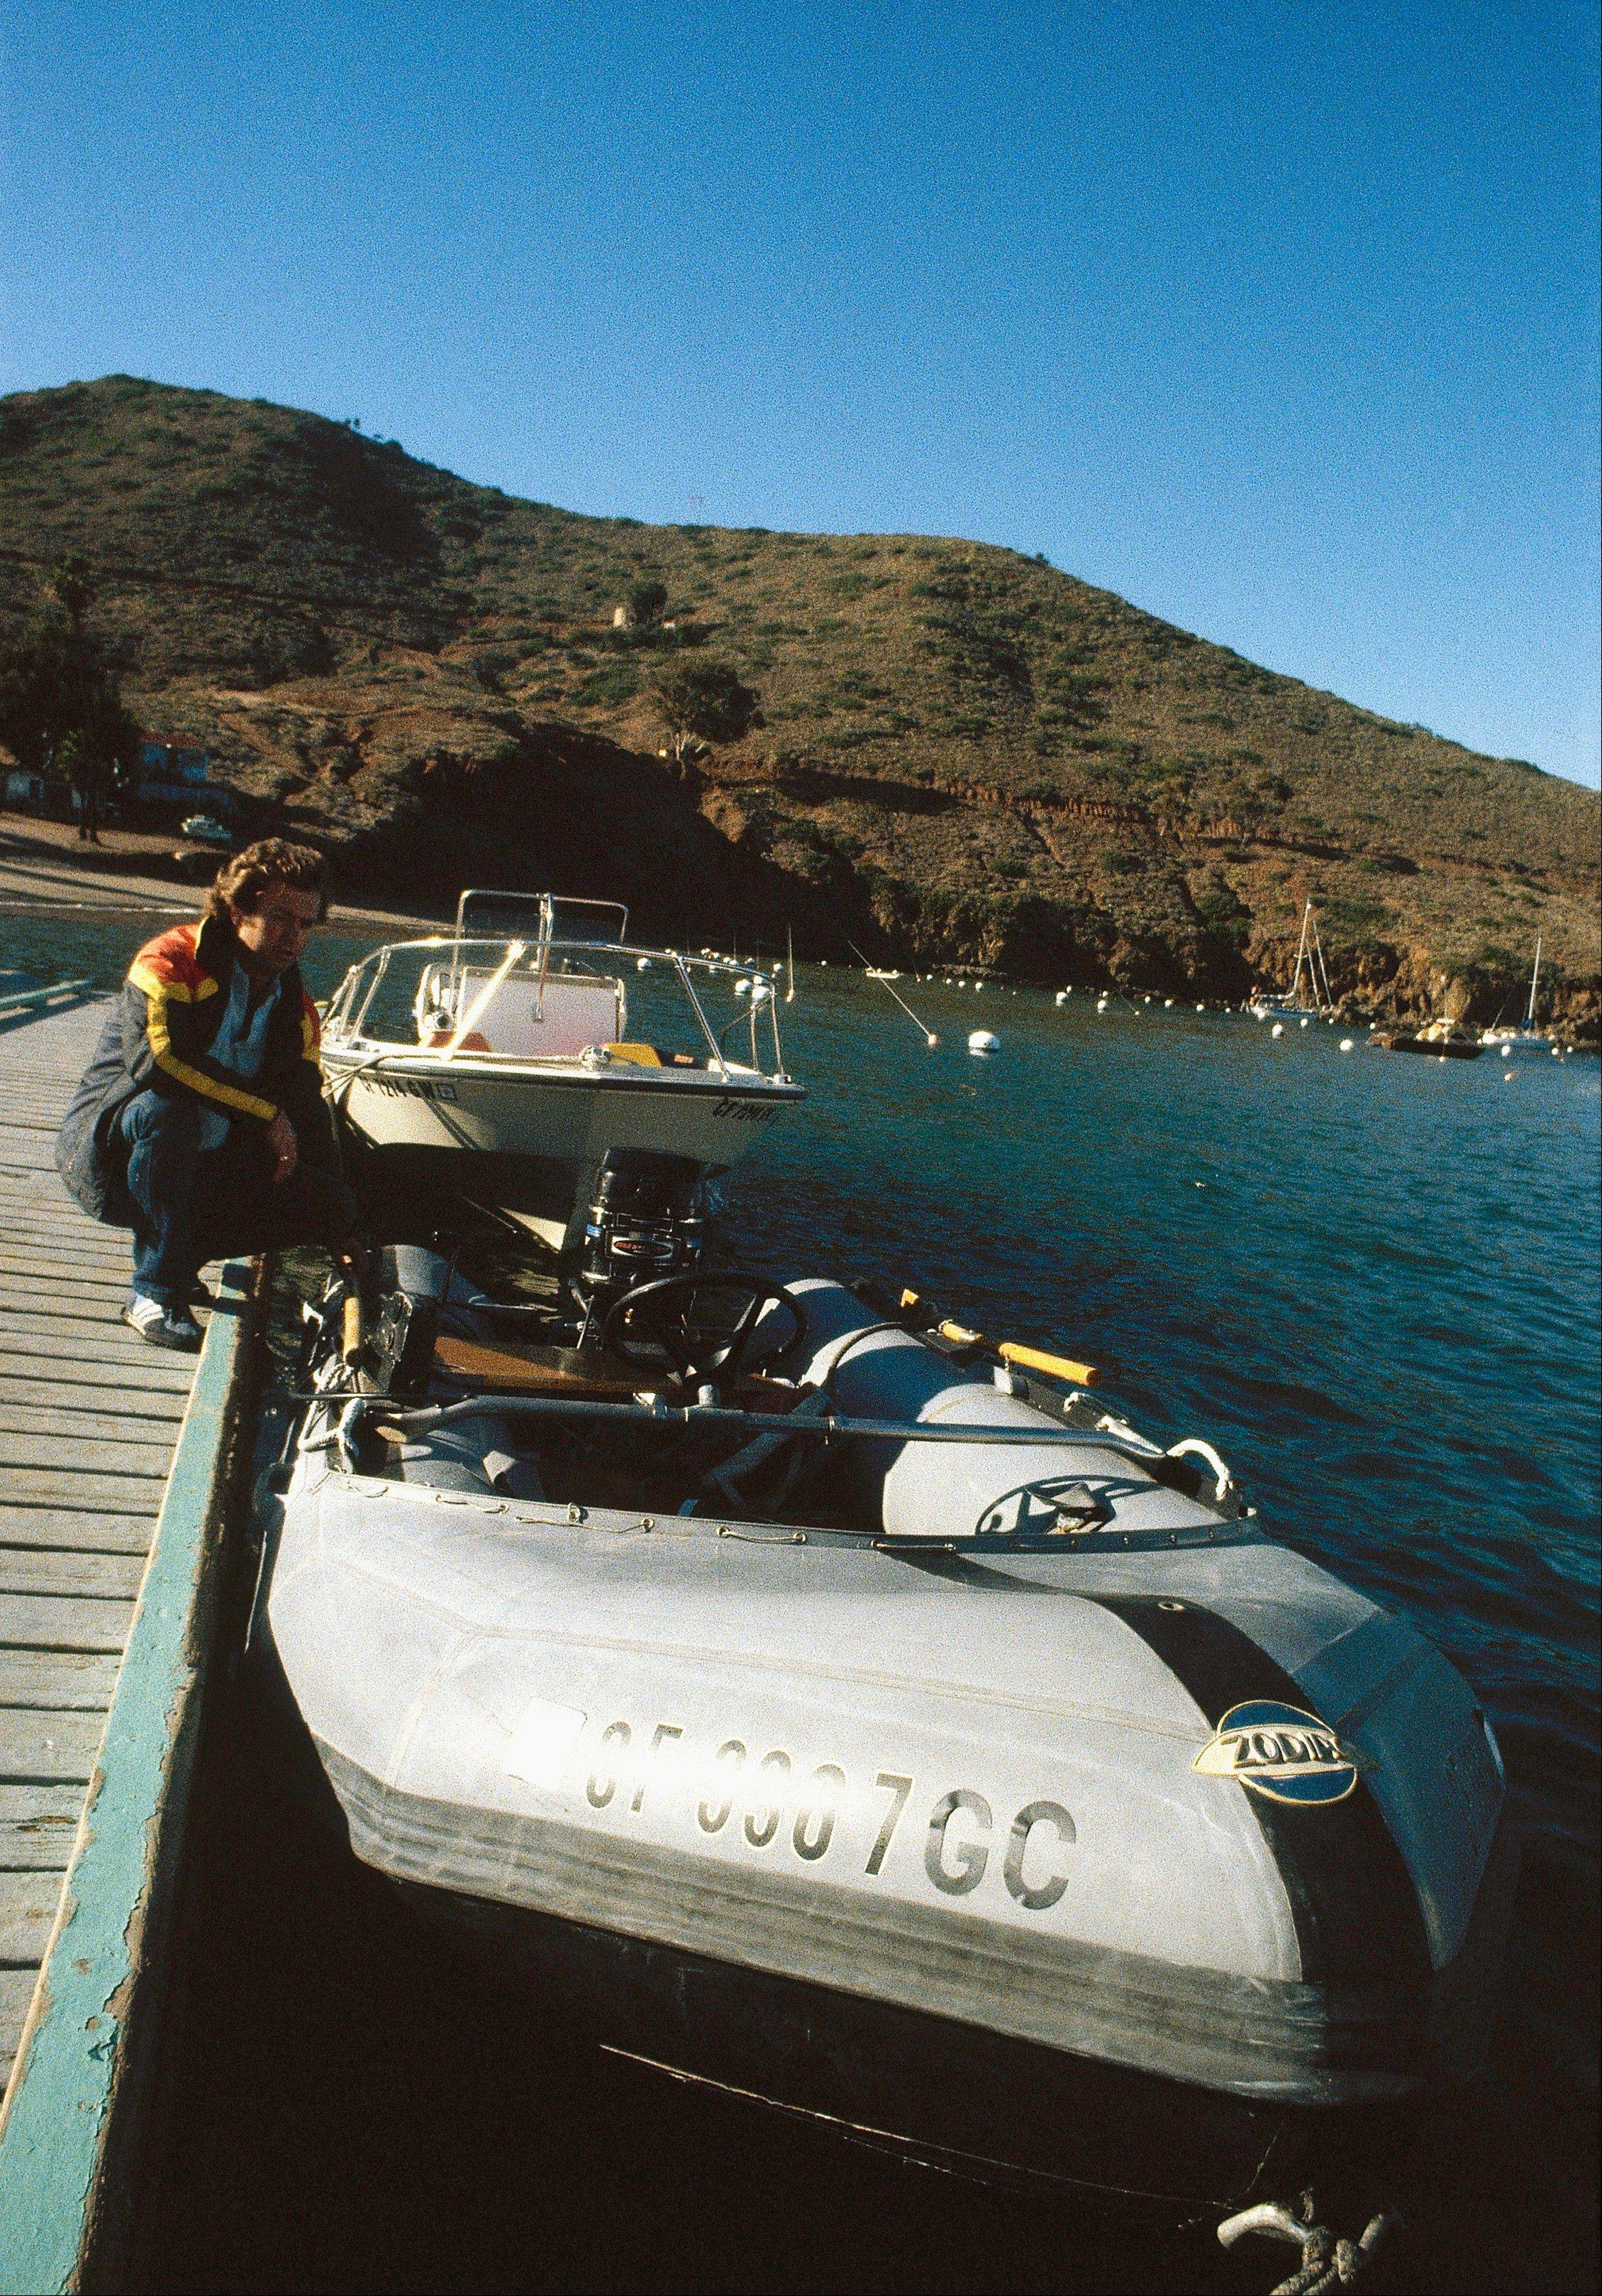 "In a Nov. 28, 1981 file photo, ""Prince Valiant,"" the inflatable dinghy used by 34-year-old actress Natalie Wood on the yacht Splendour, sits pierside in Catalina Island, Calif. Yacht captain Dennis Davern said on national TV Friday, Nov. 18, 2011 that he lied to investigators about Natalie Wood's mysterious death 30 years ago and blames the actress' husband at the time, Robert Wagner, for her drowning in the ocean off Southern California."